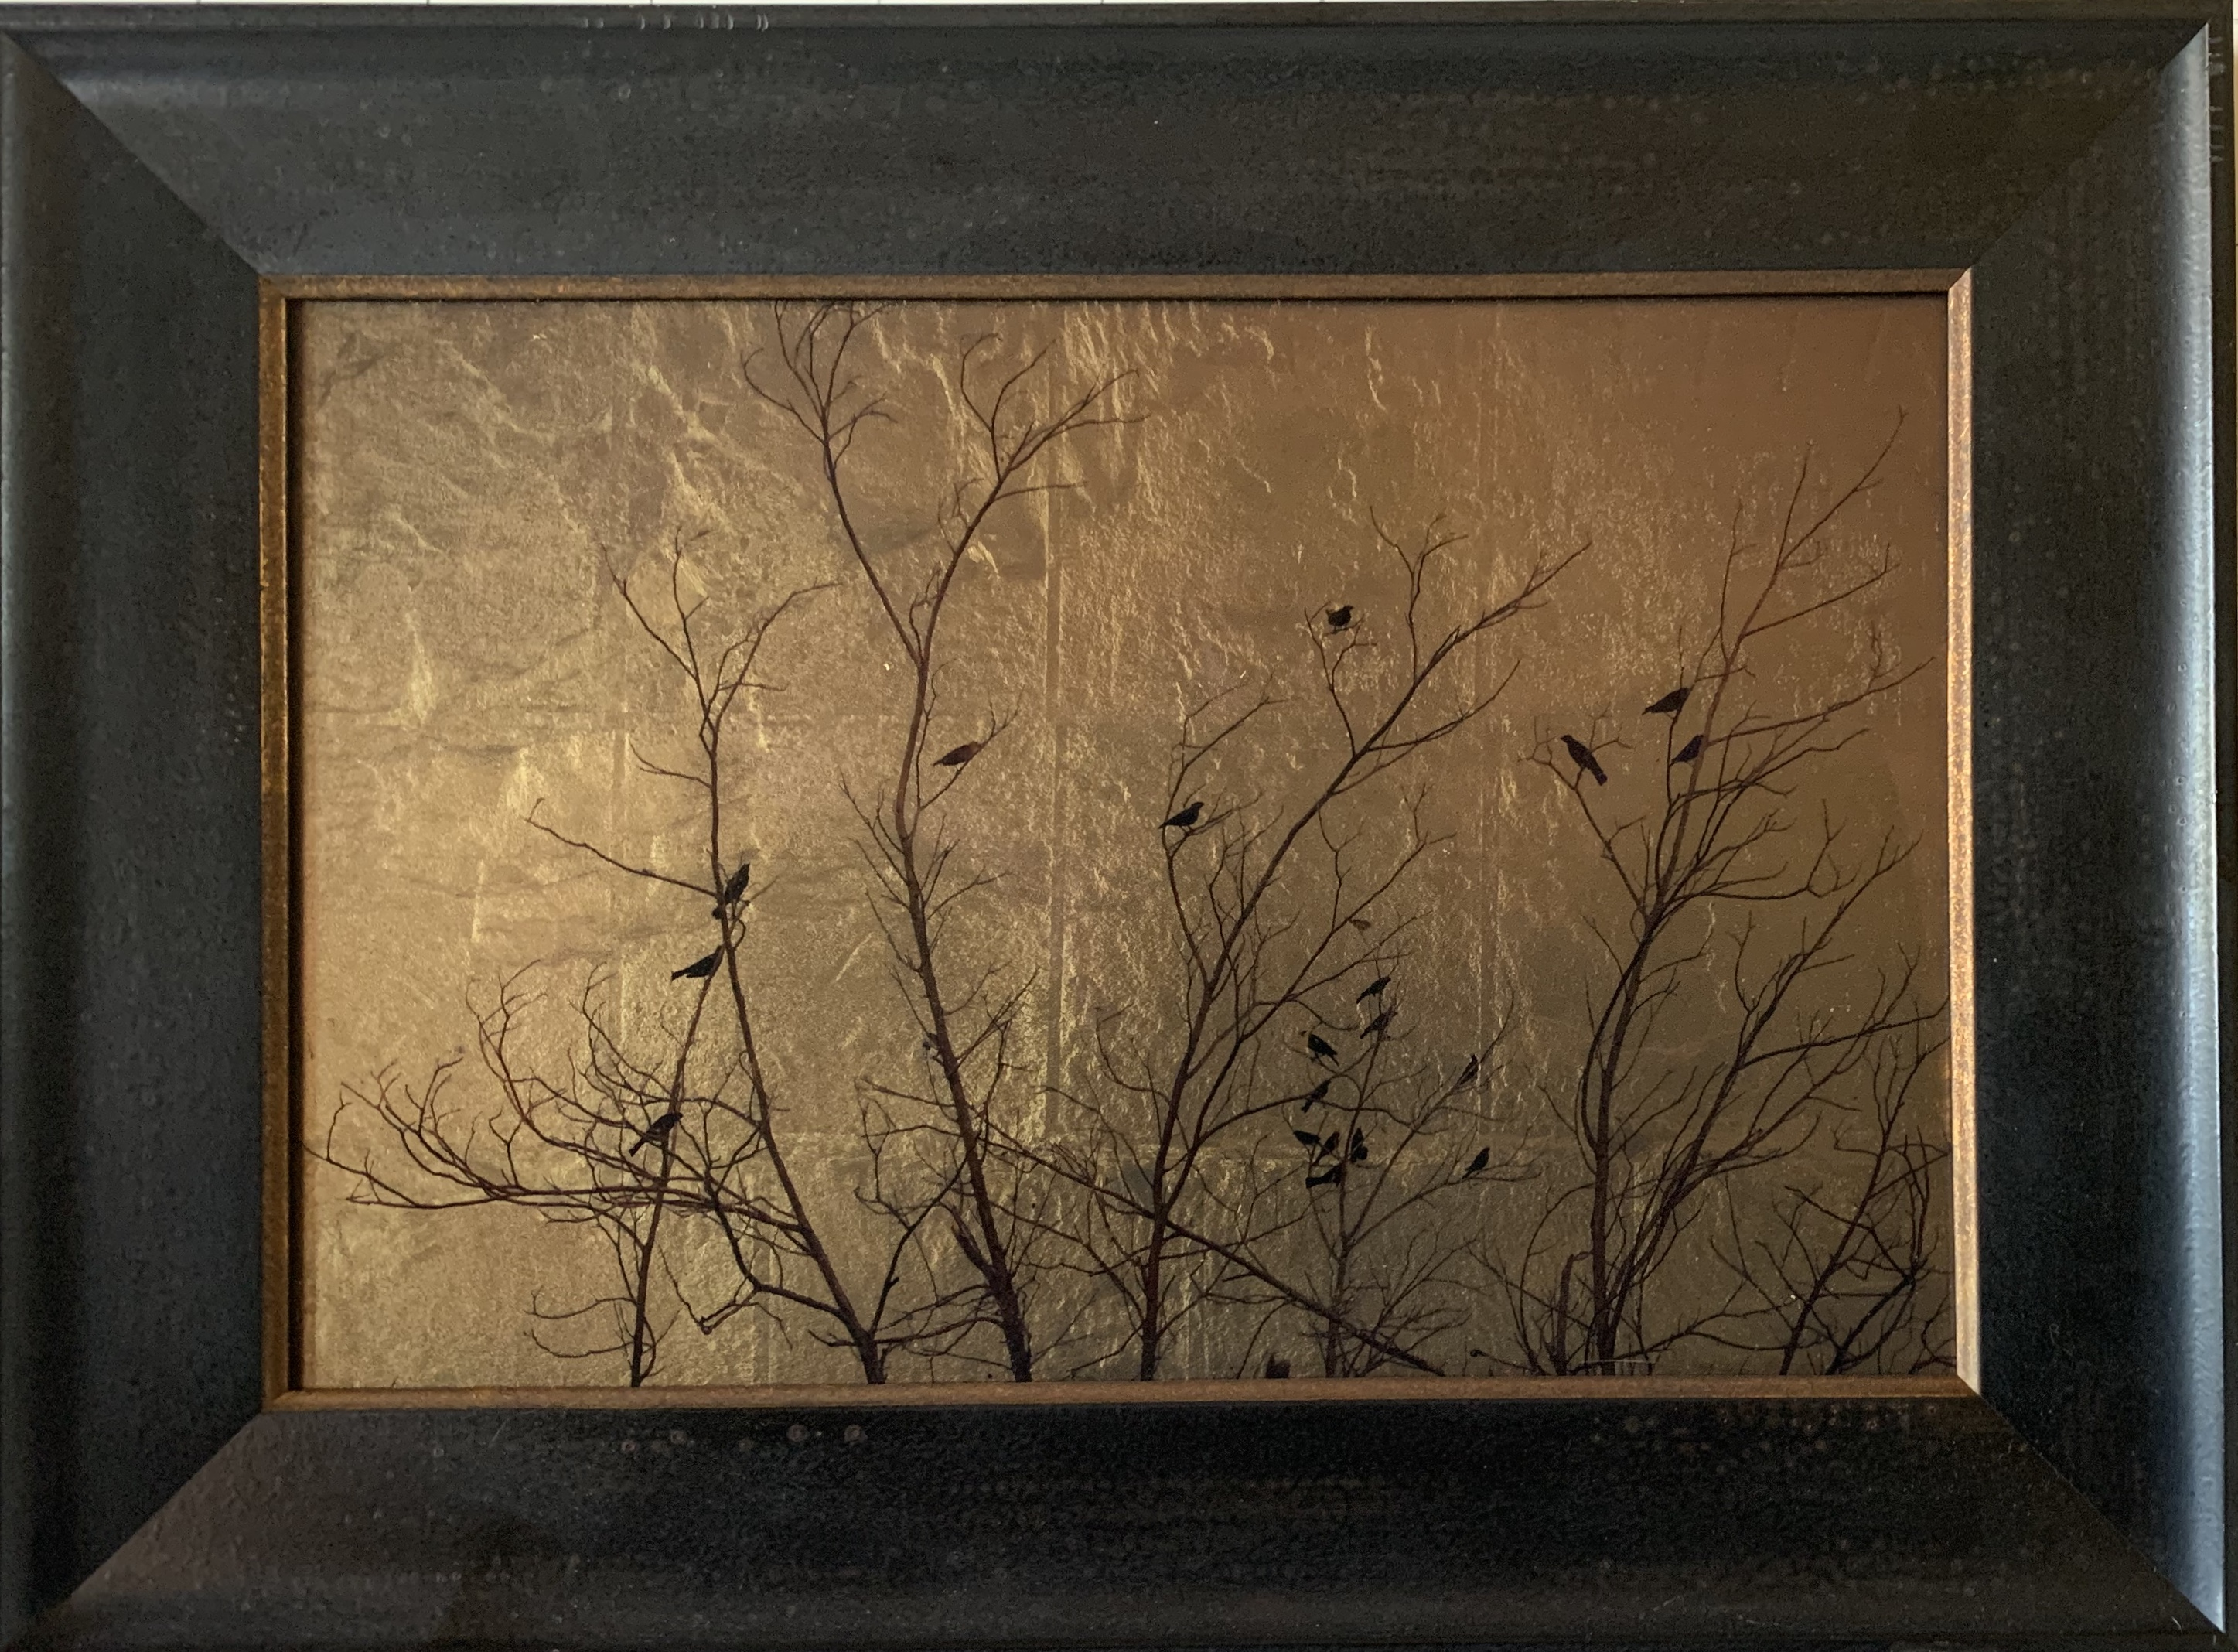 Kate Breakey, Twenty-two birds in bare tree